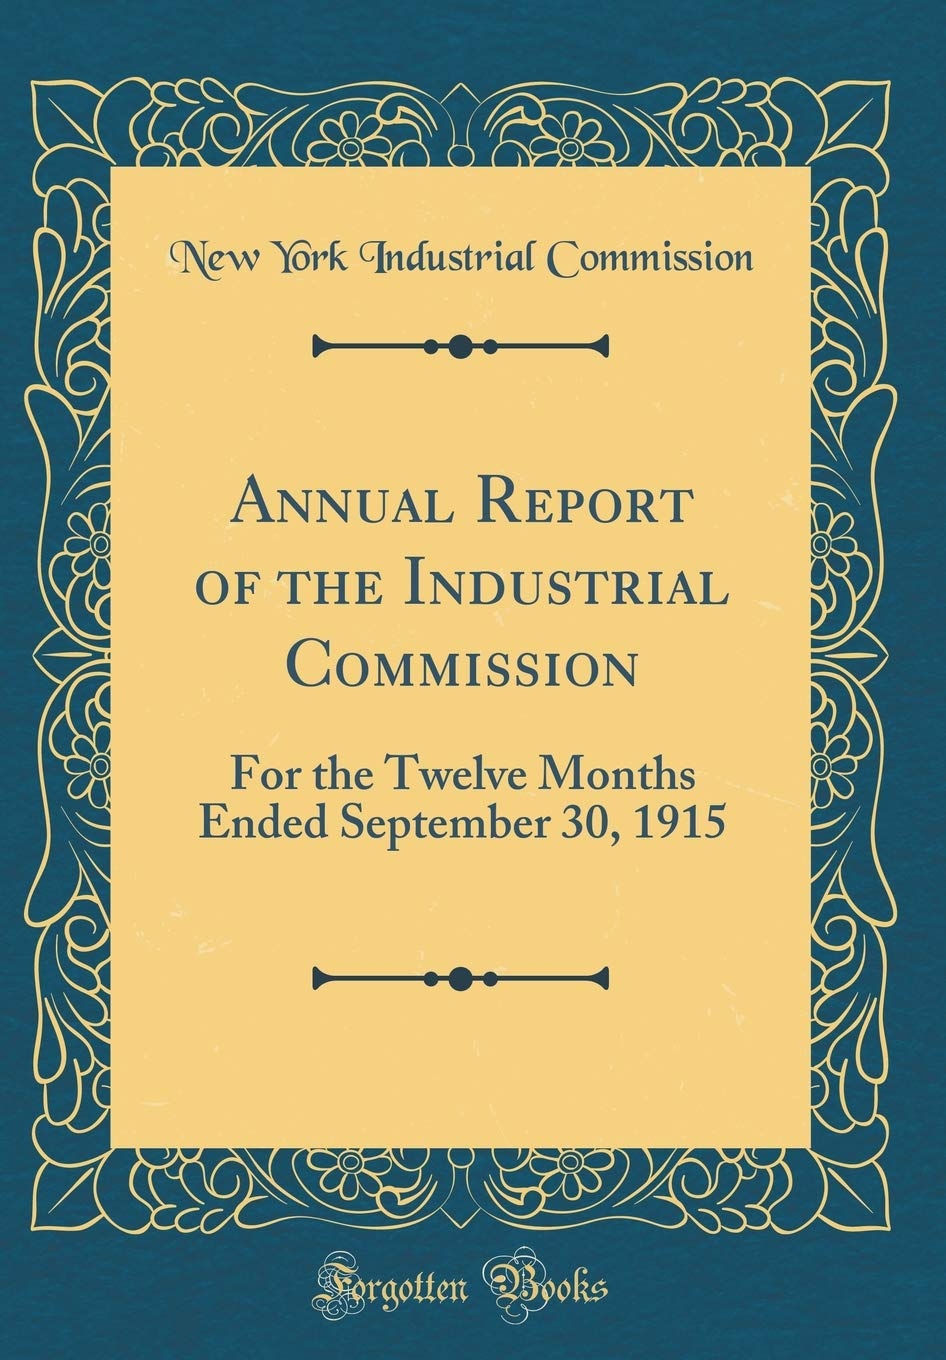 Annual Report of the Industrial Commission: For the Twelve Months Ended September 30, 1915 (Classic Reprint) pdf epub